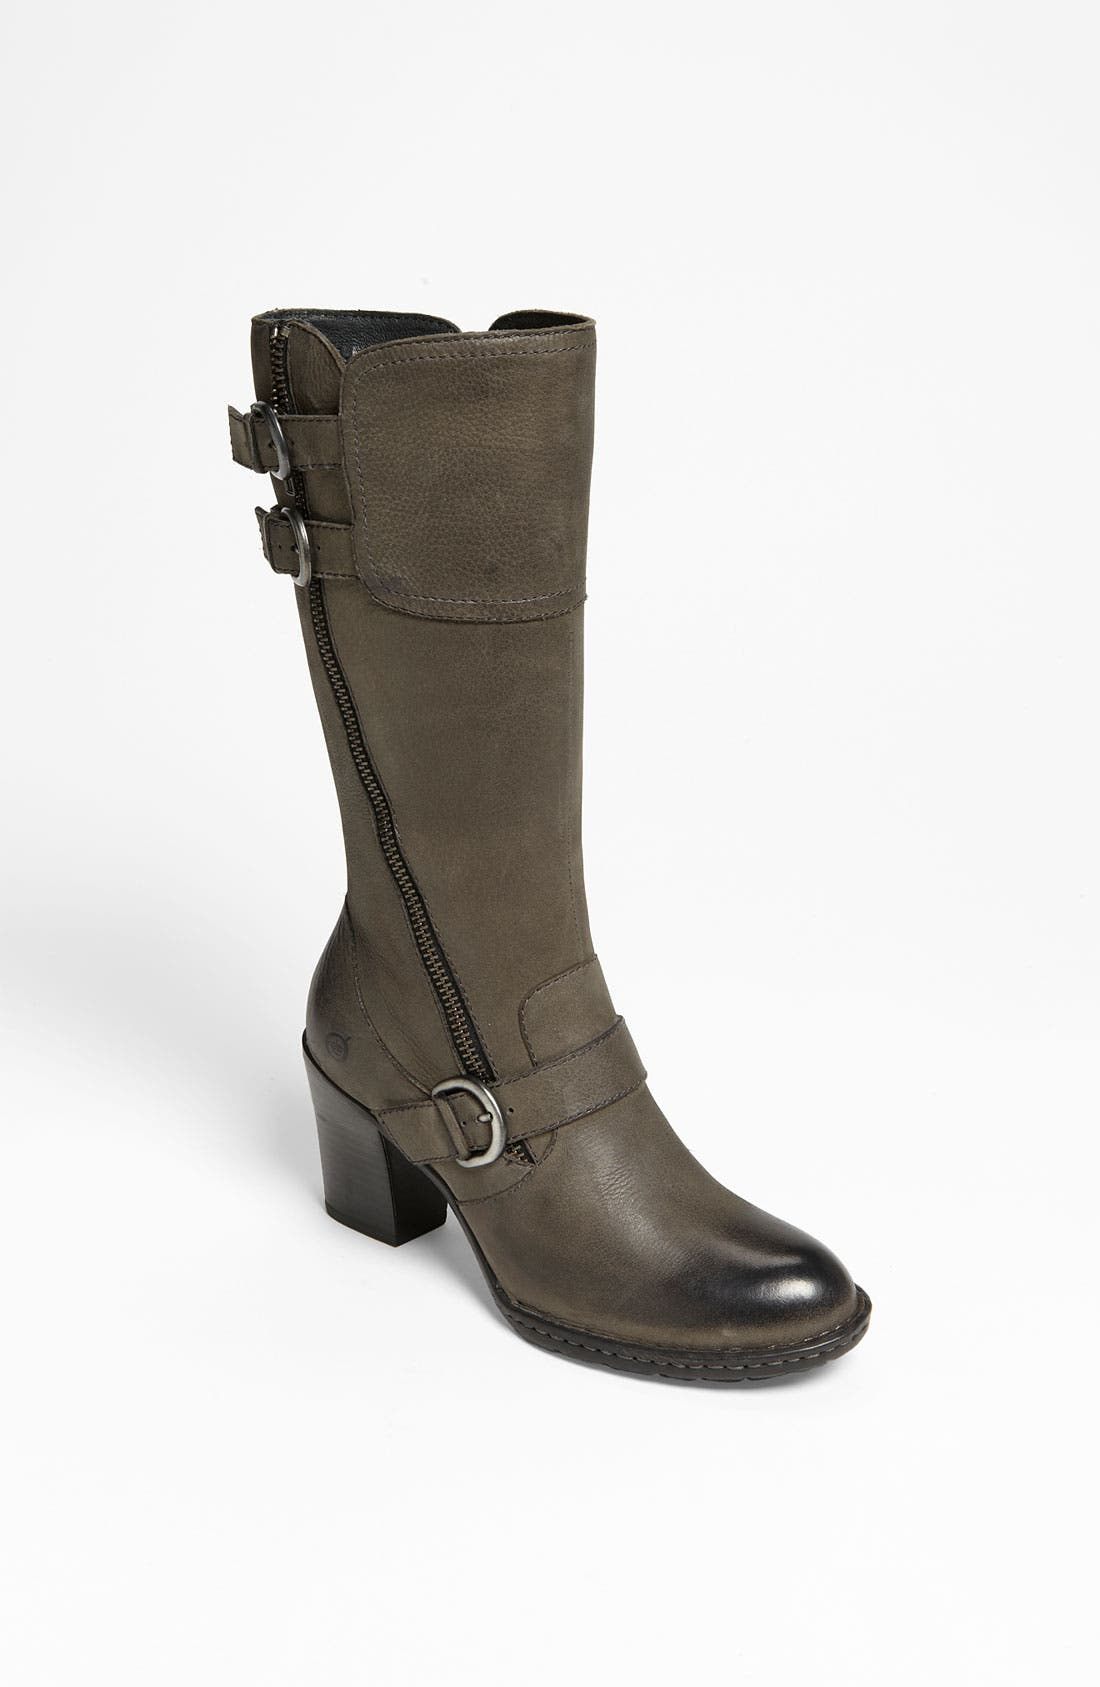 Alternate Image 1 Selected - Børn 'Treddy' Boot (Nordstrom Exclusive)